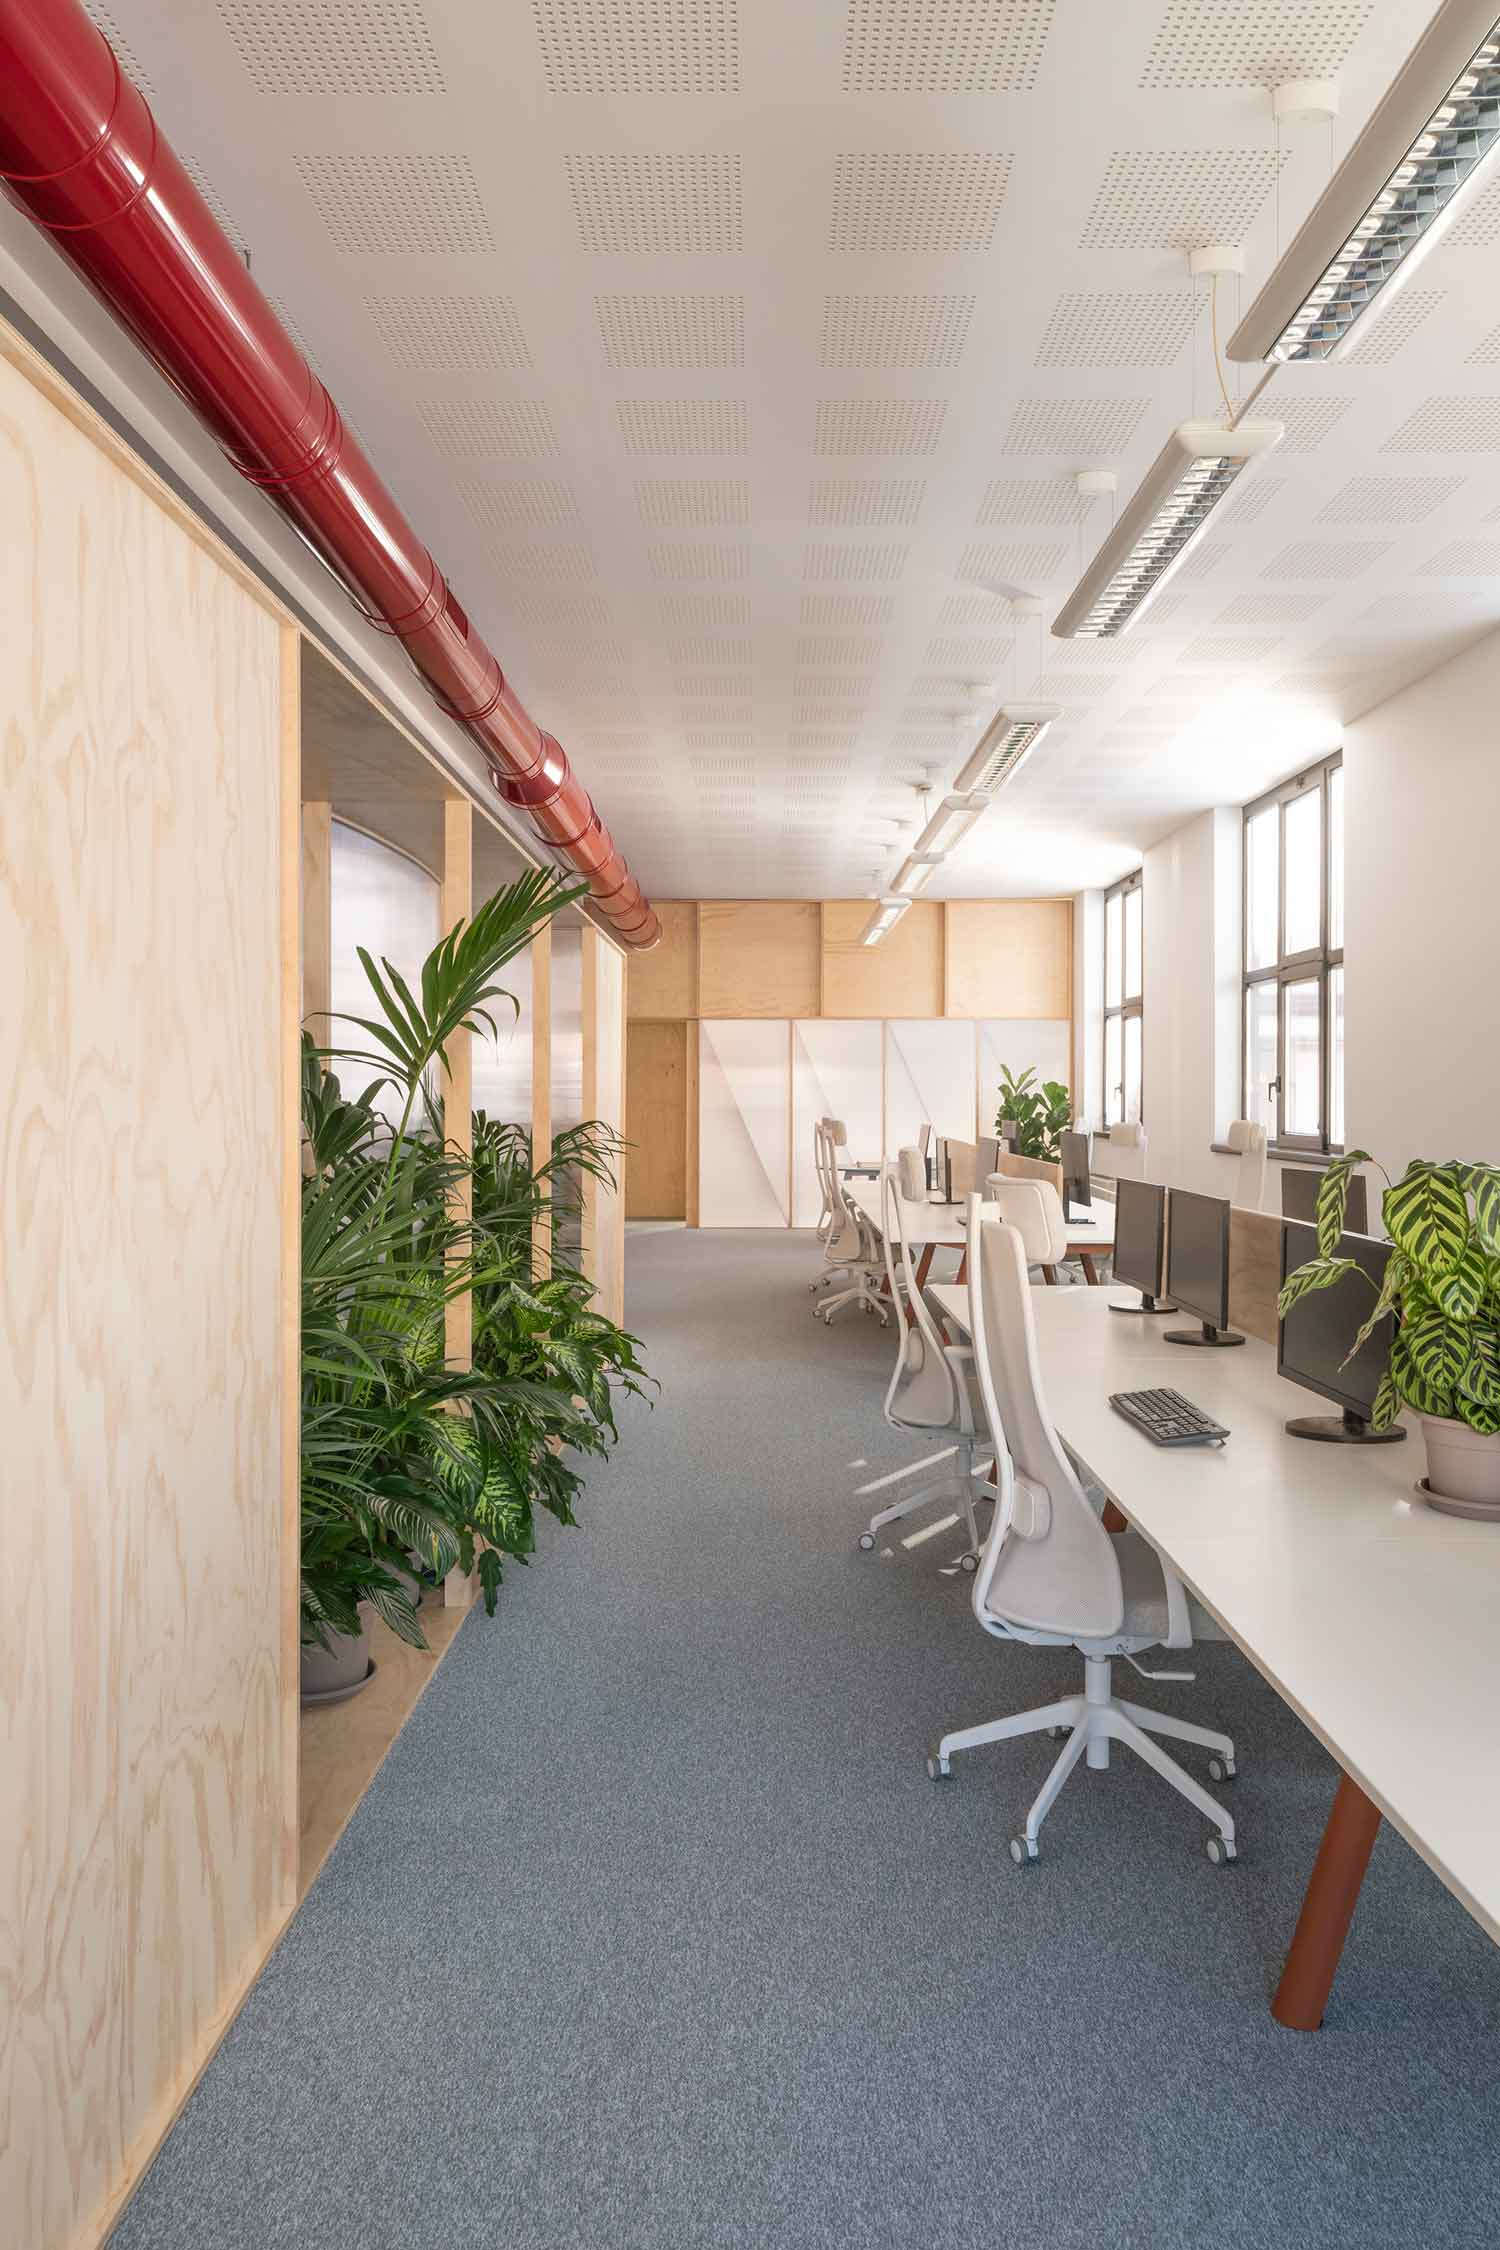 Milkman HQ in Verona by Studio Wok | Yellowtrace